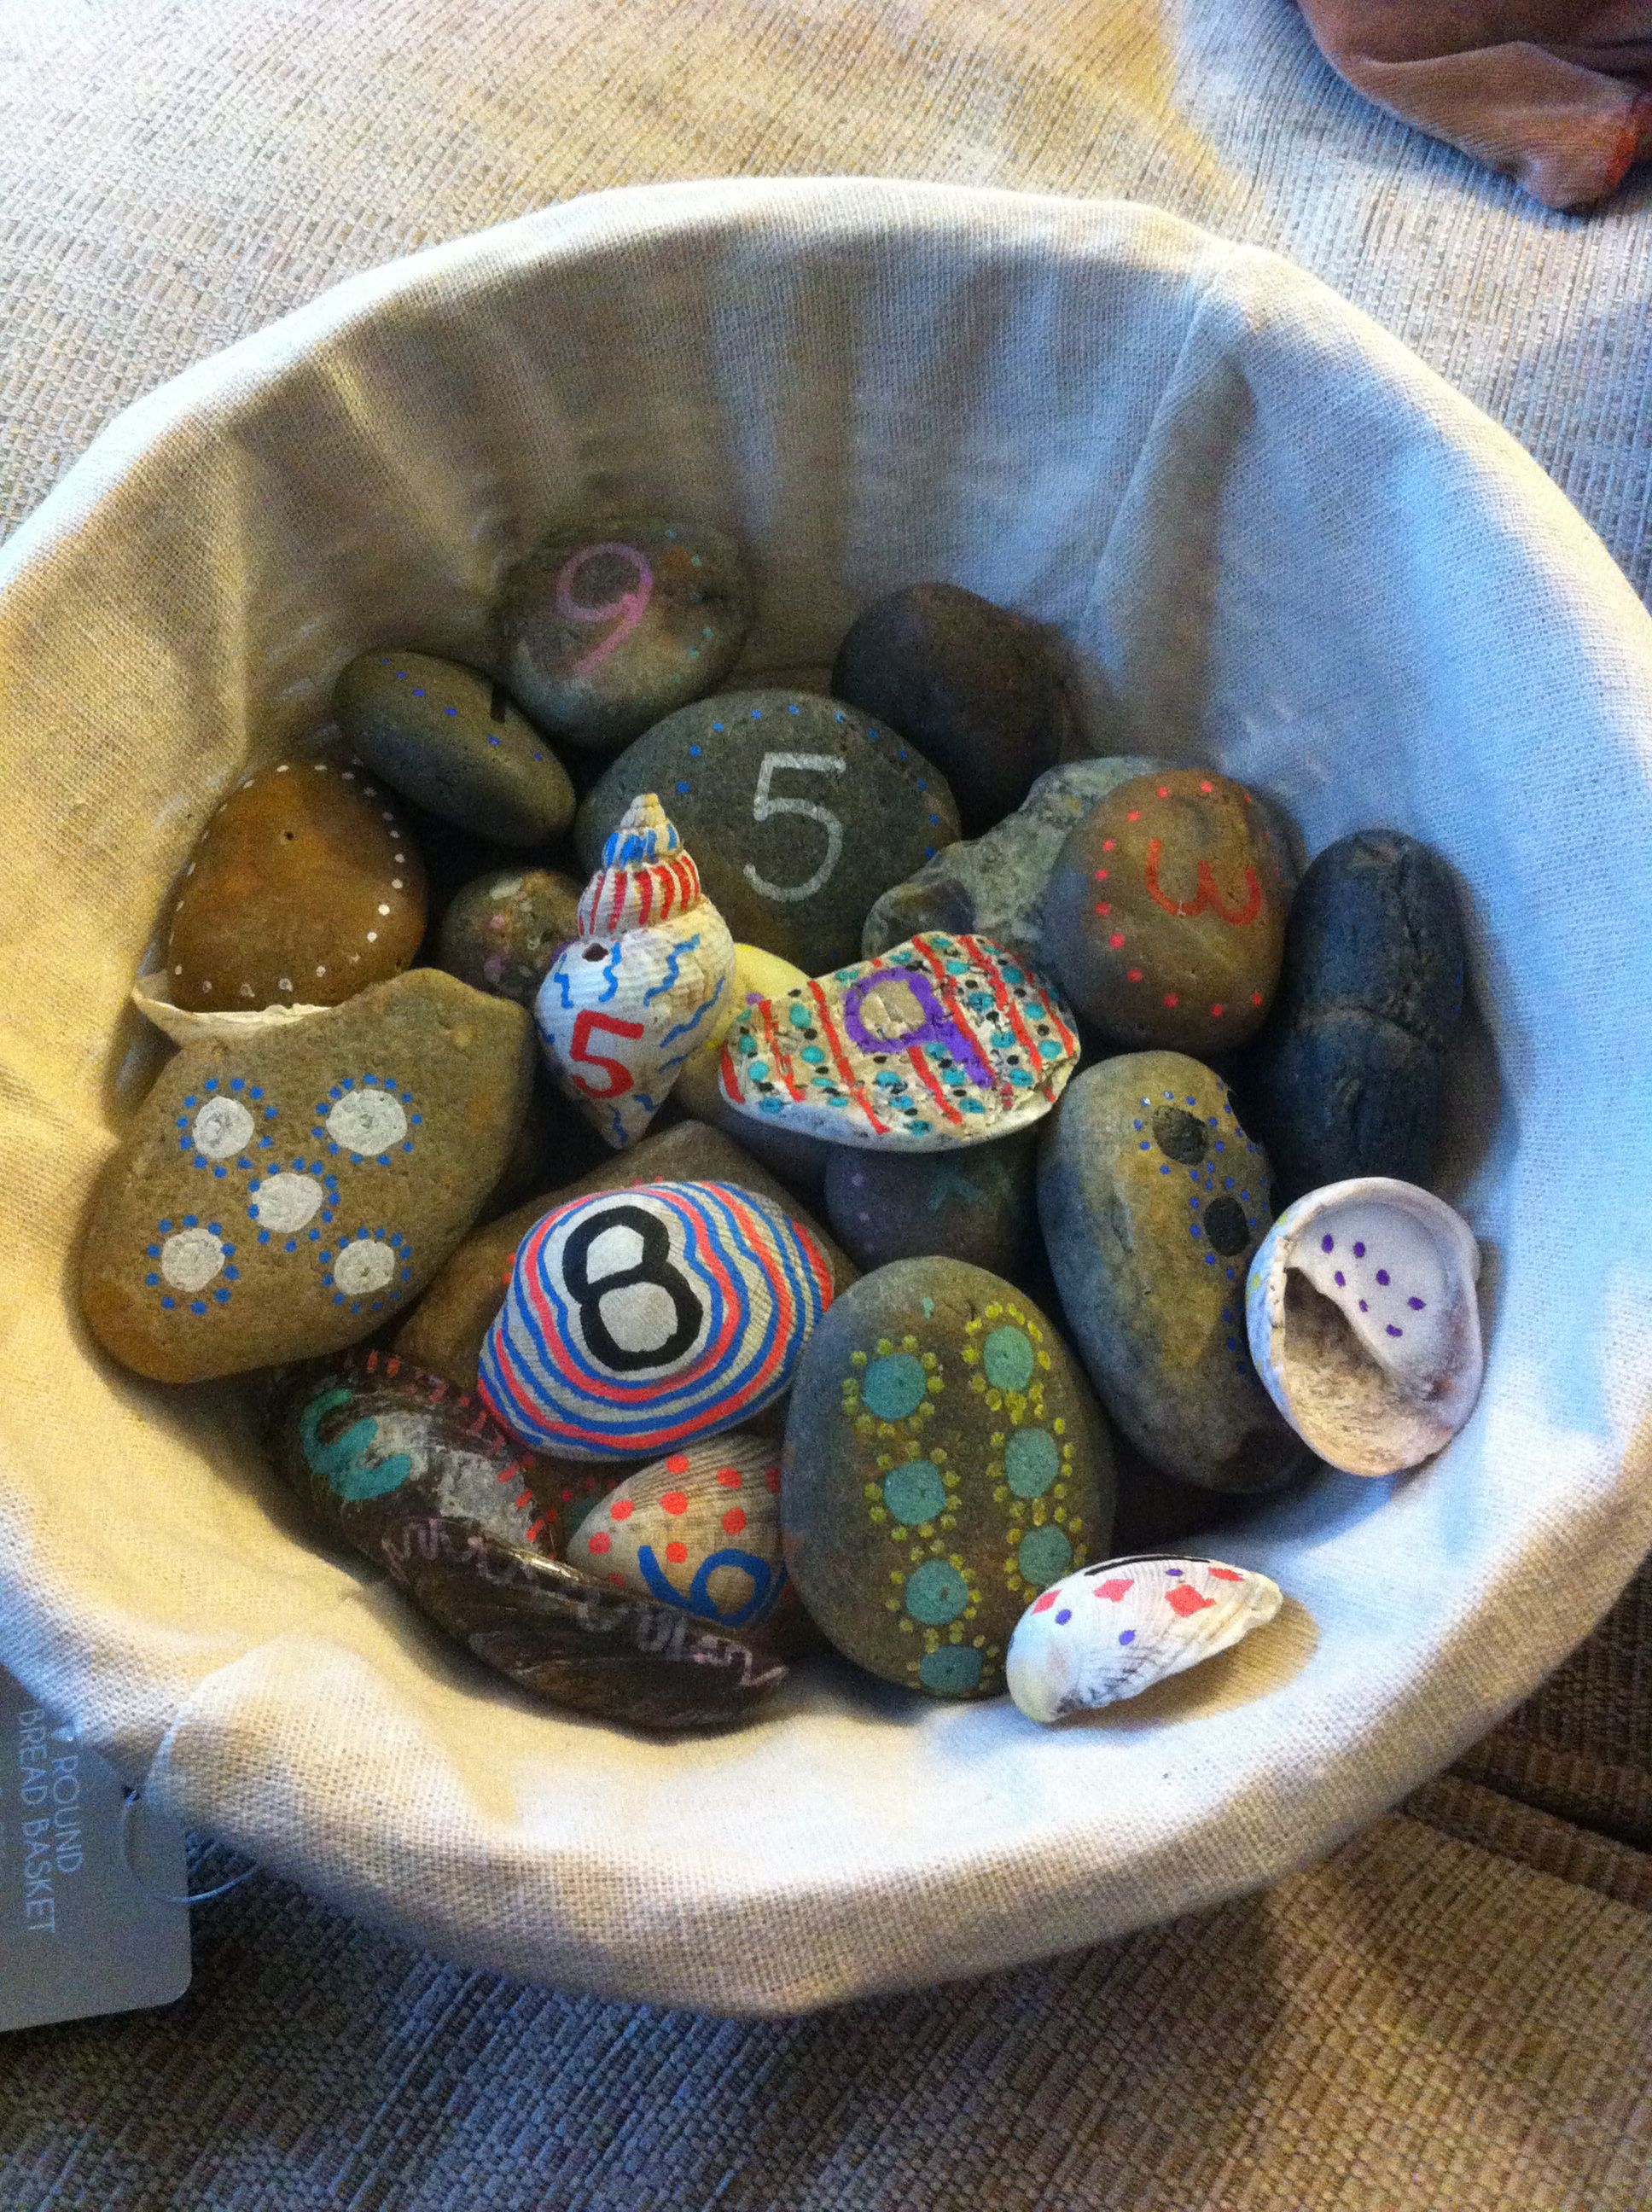 Counting Stones For Early Years Education Home Made With